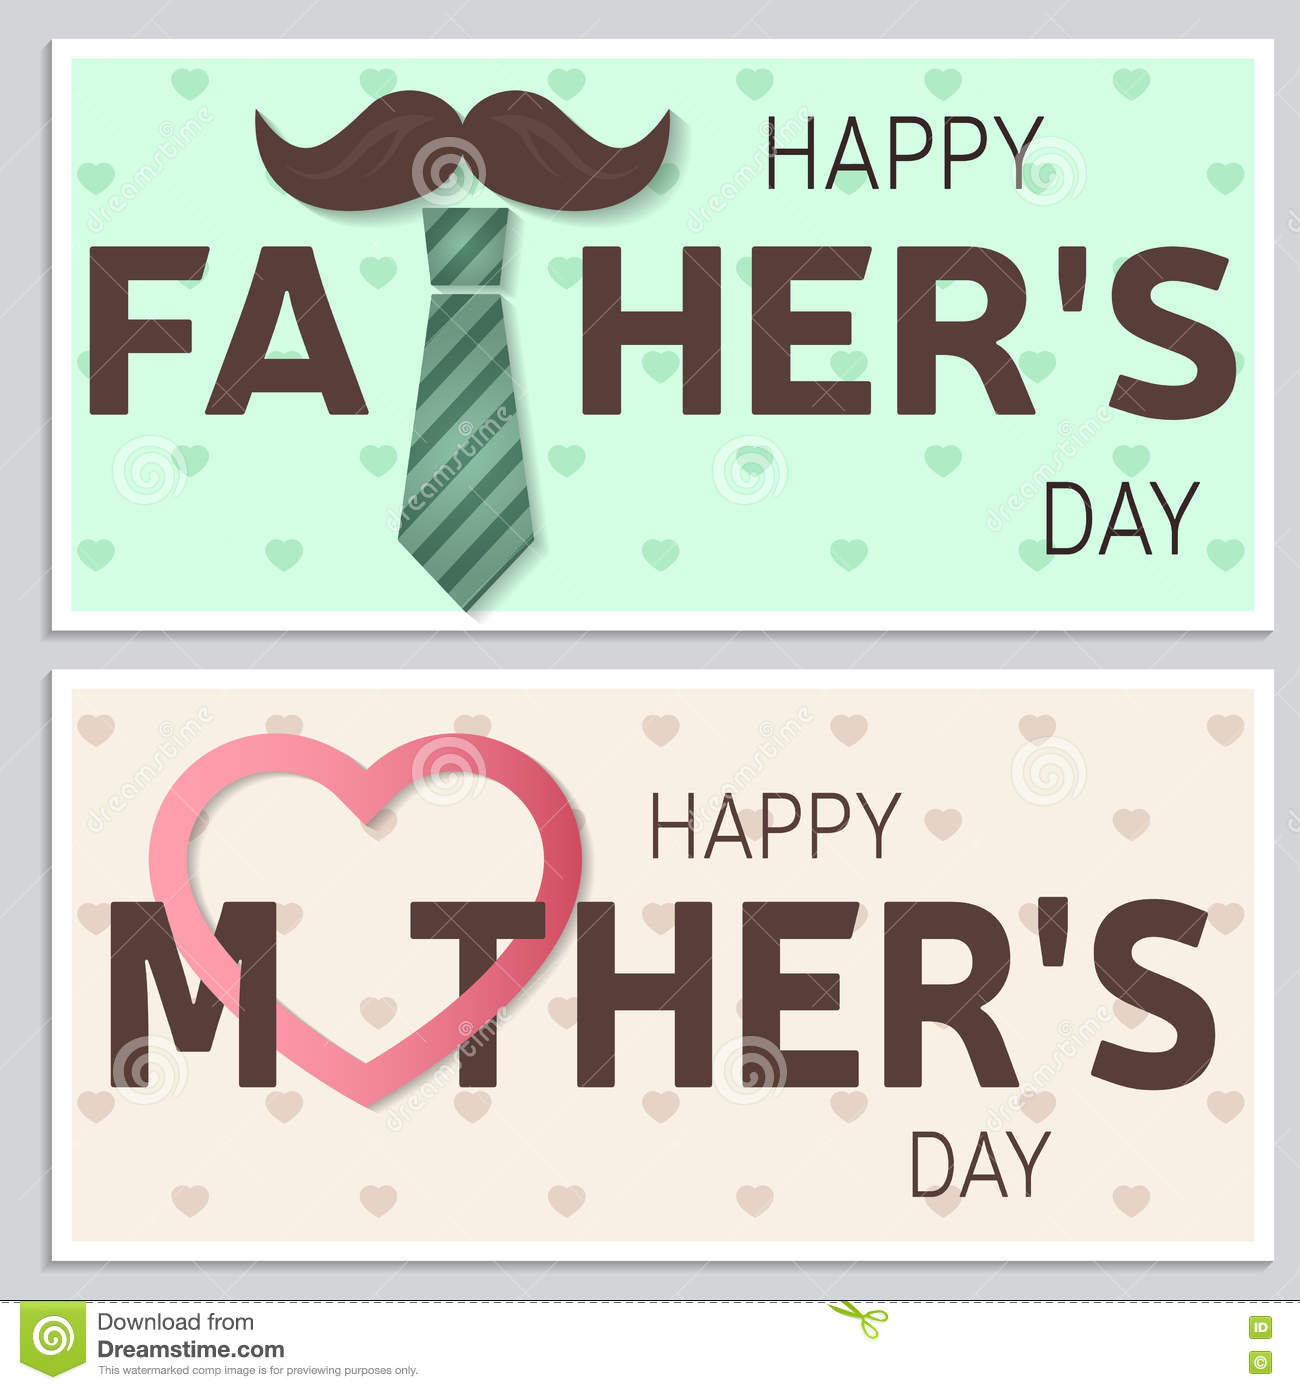 Happy fathers day mum quotes